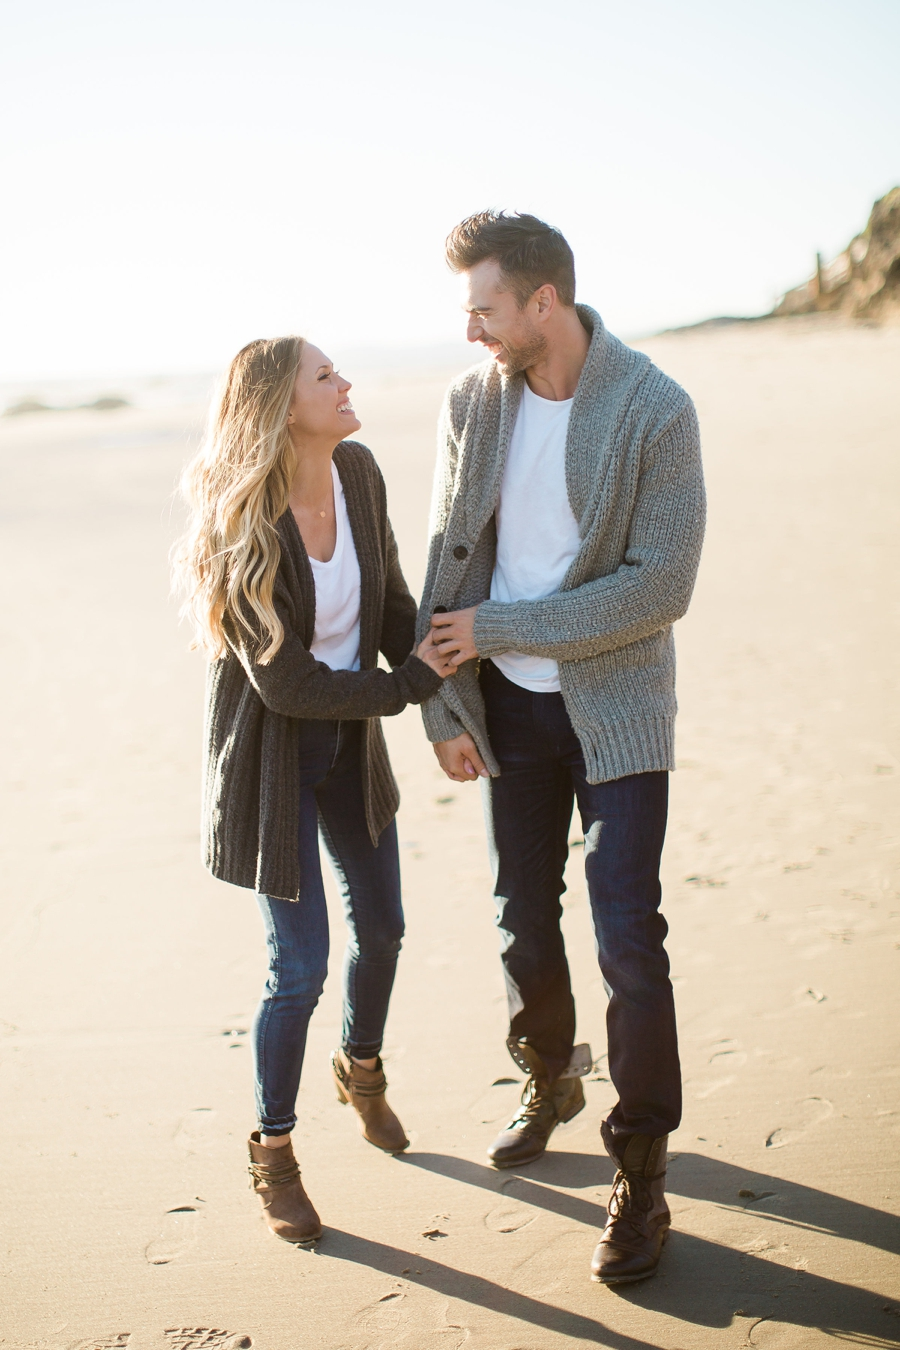 taylor_kinzie_photography_los_angeles_wedding_photographer_beach_engagement_session_0013